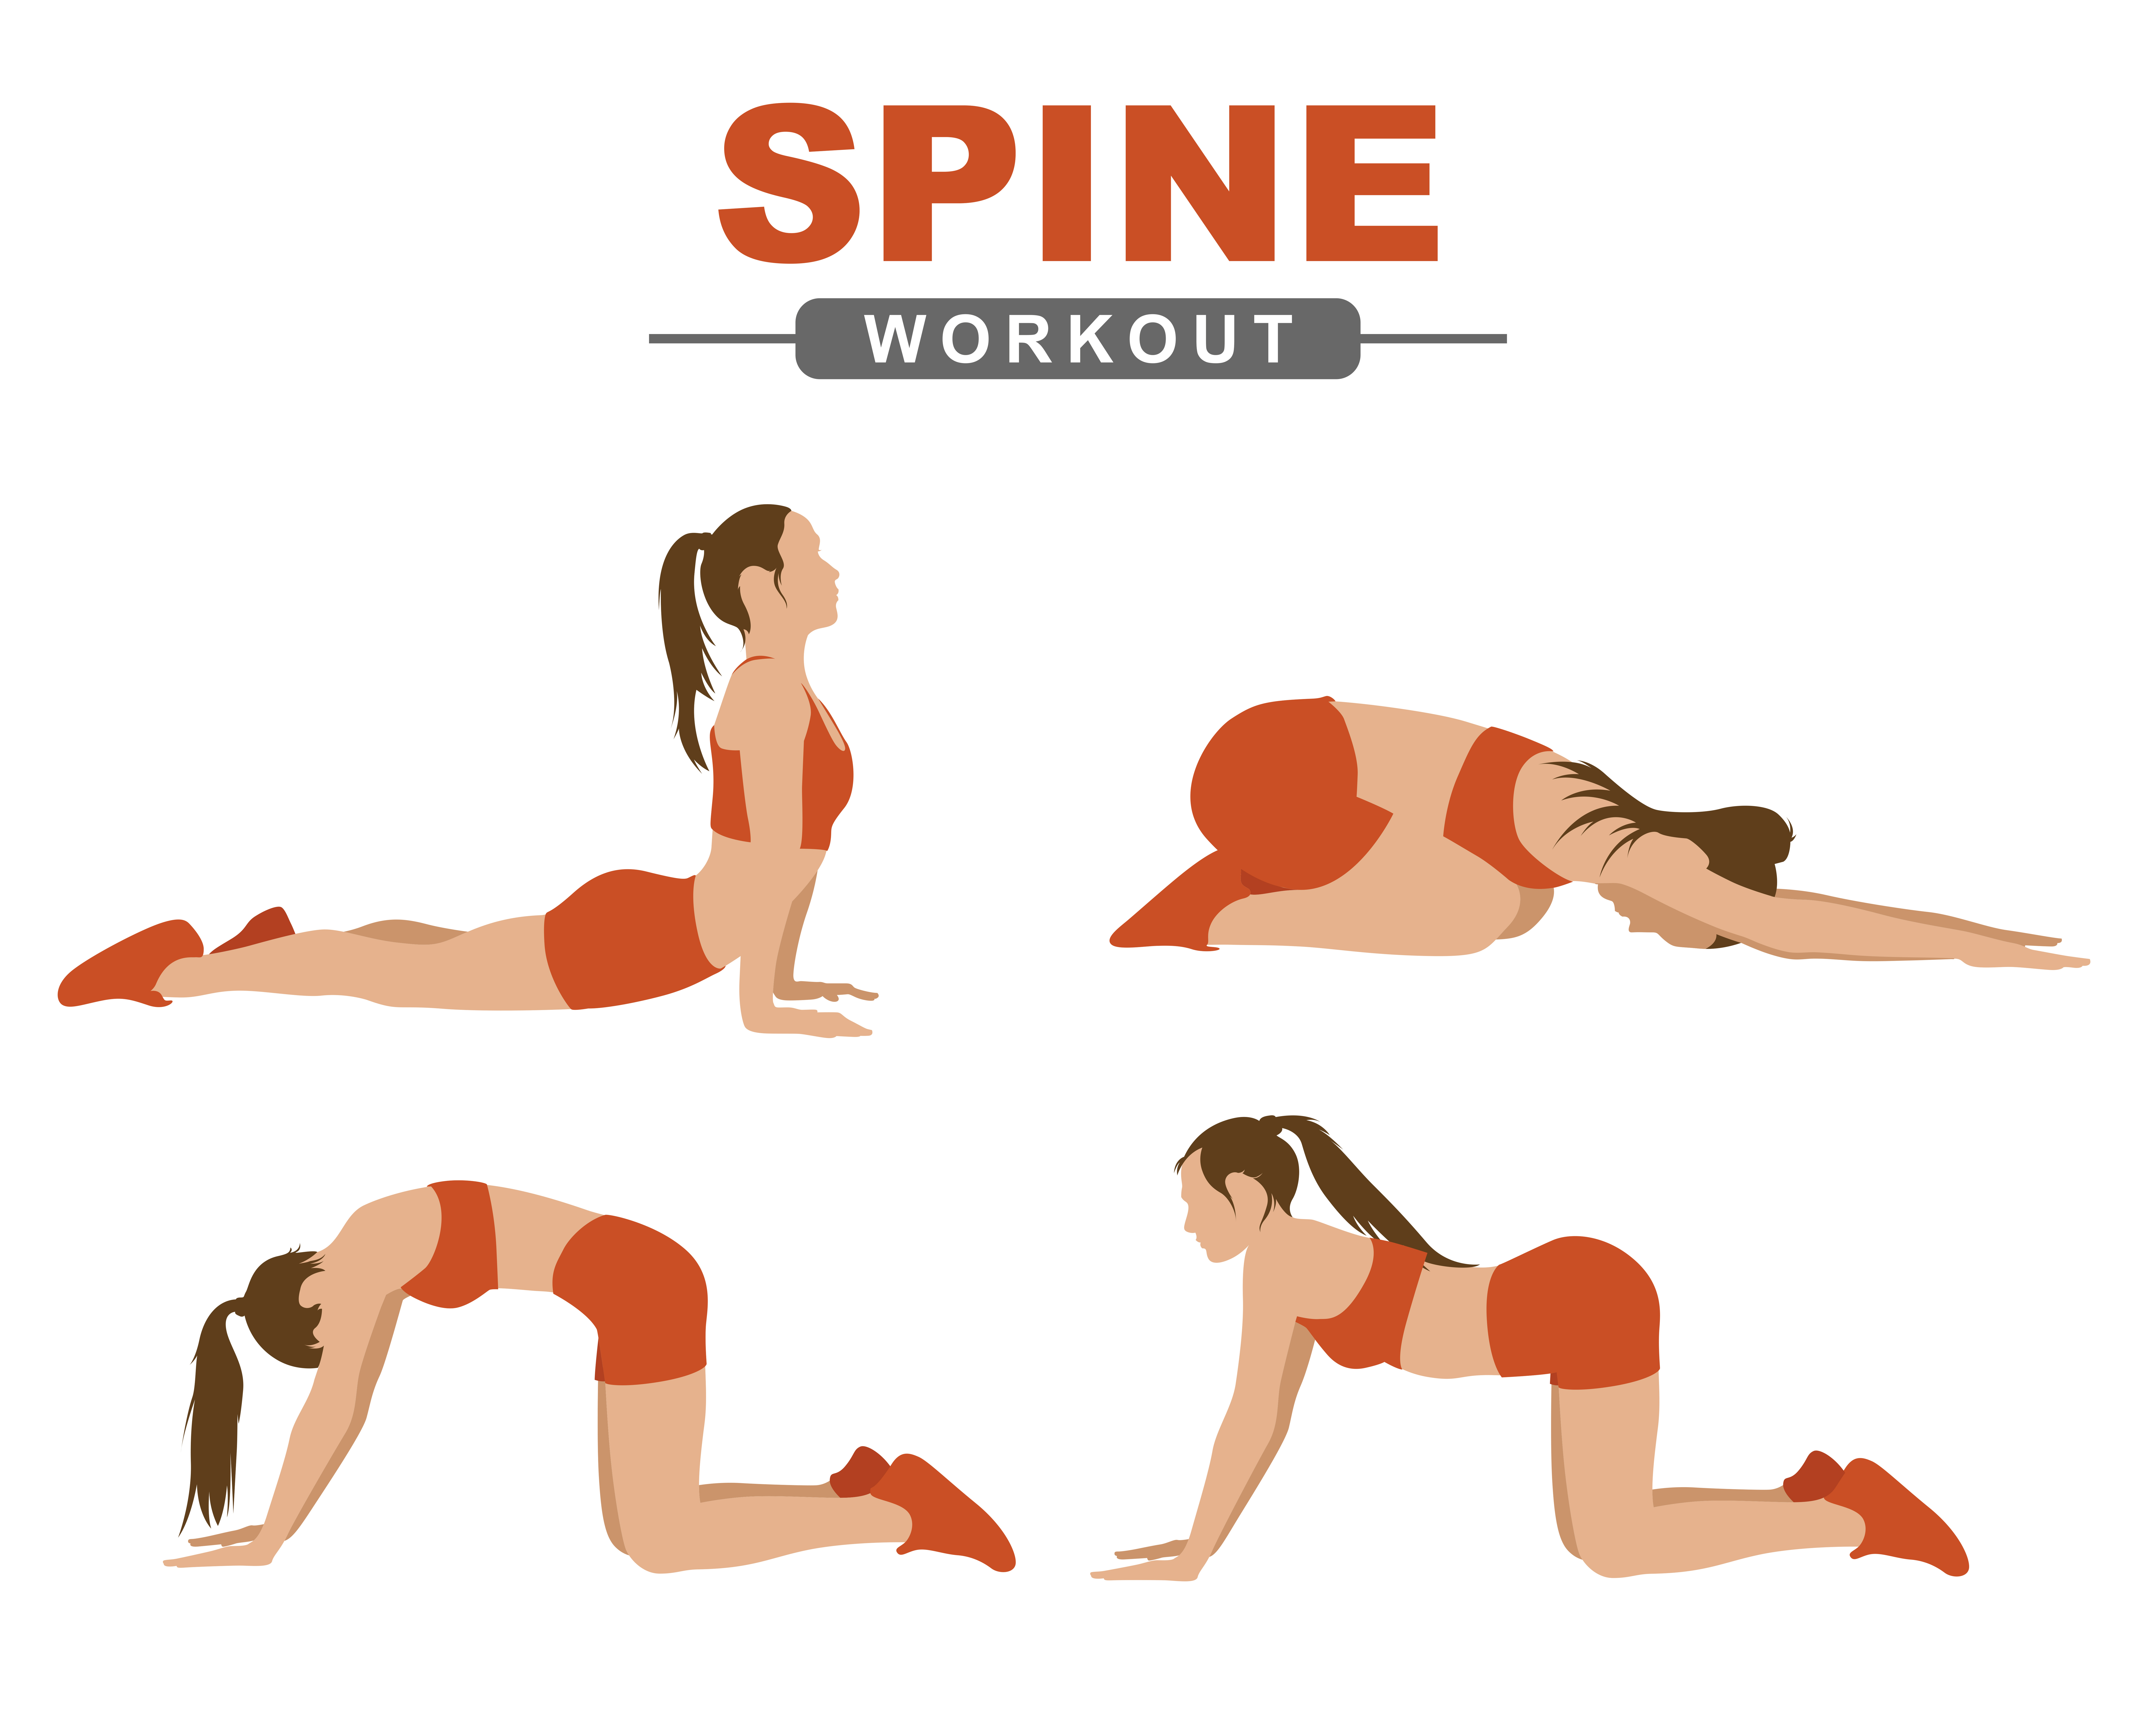 Figure 6: Spine Workout